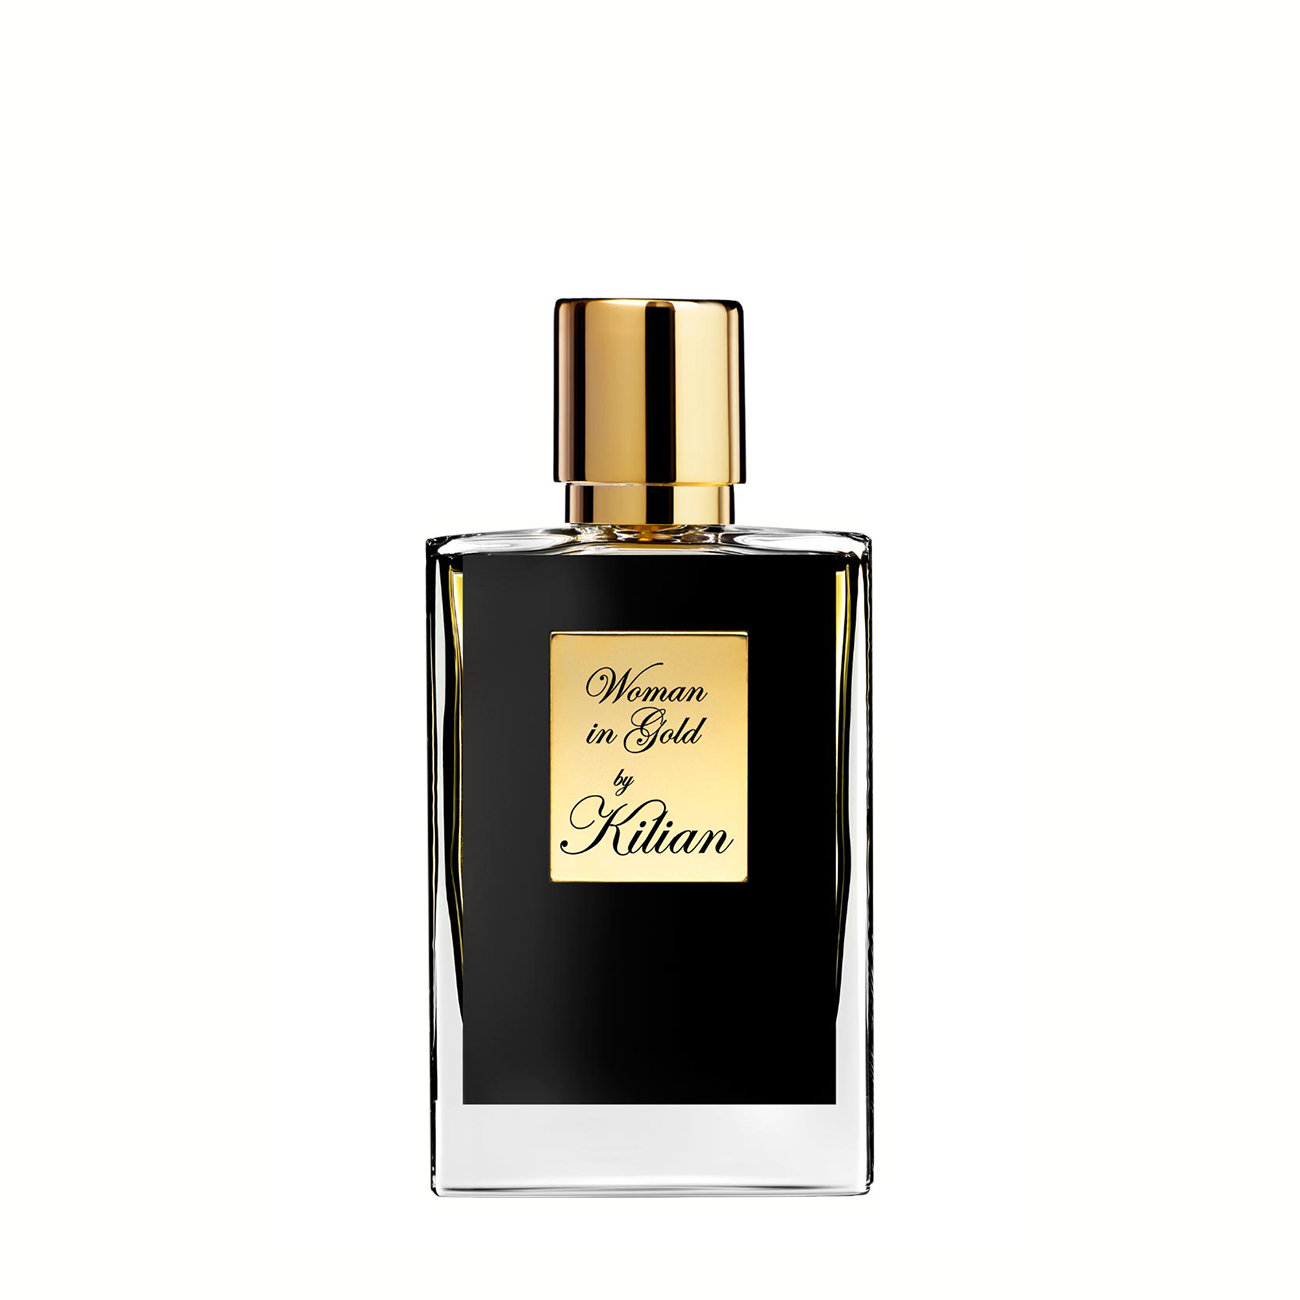 WOMAN IN GOLD REFILLABLE - WITHOUT CLUTCH 50ml imagine produs